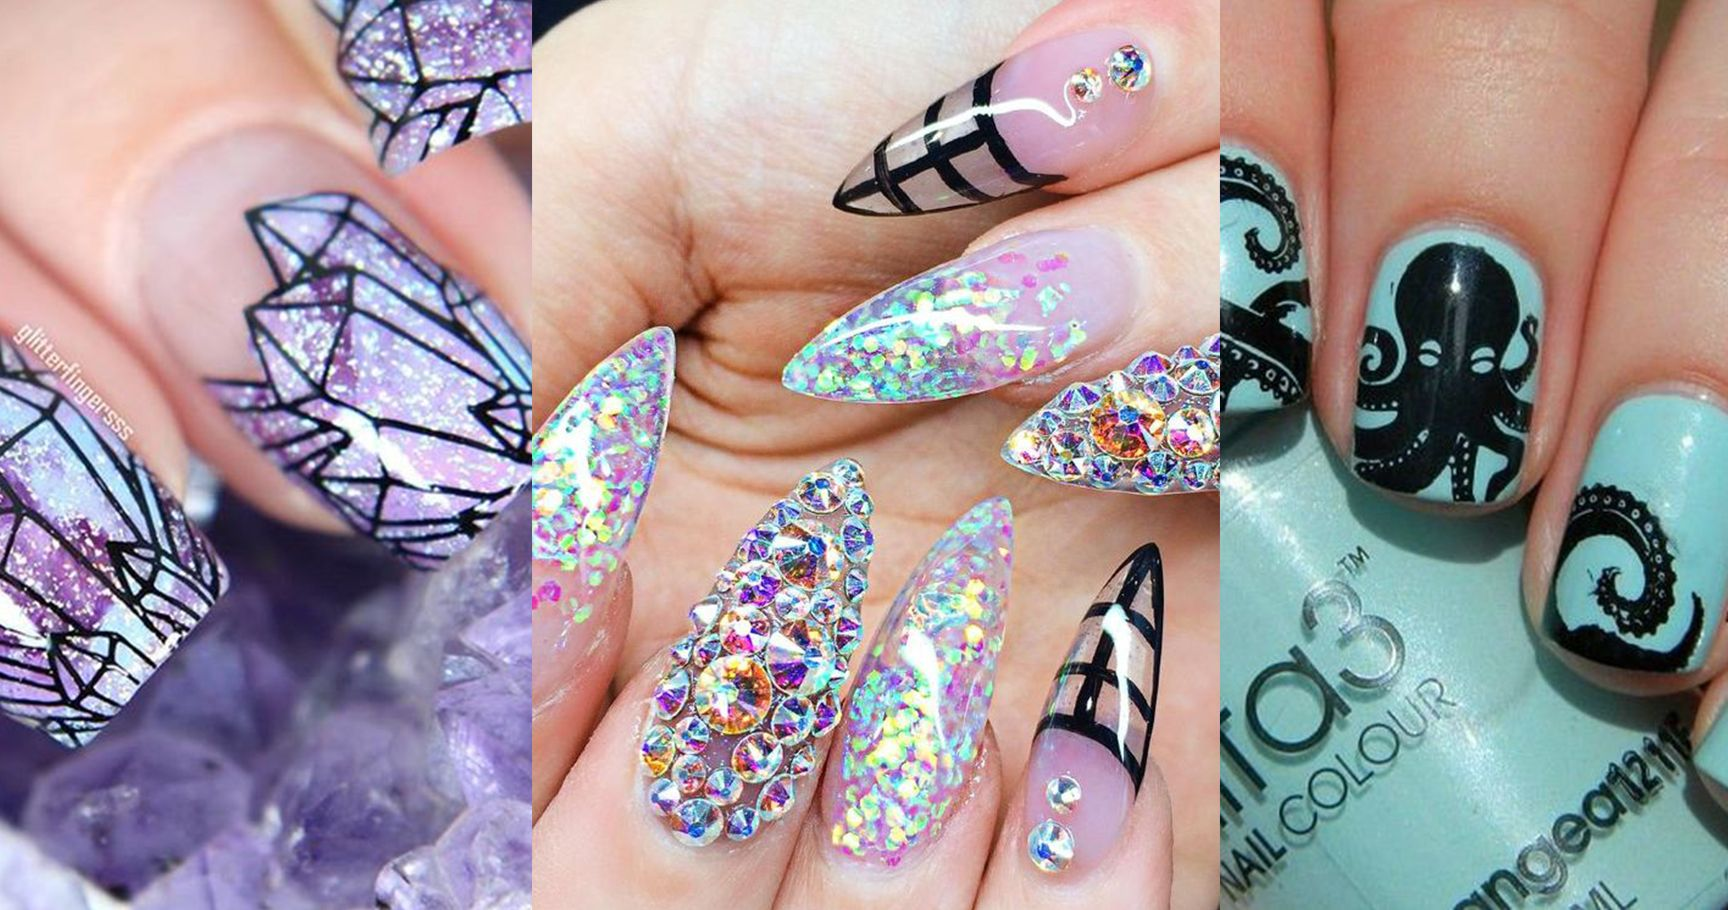 15 Wacky Nail Designs That Are Actually Mesmerizing